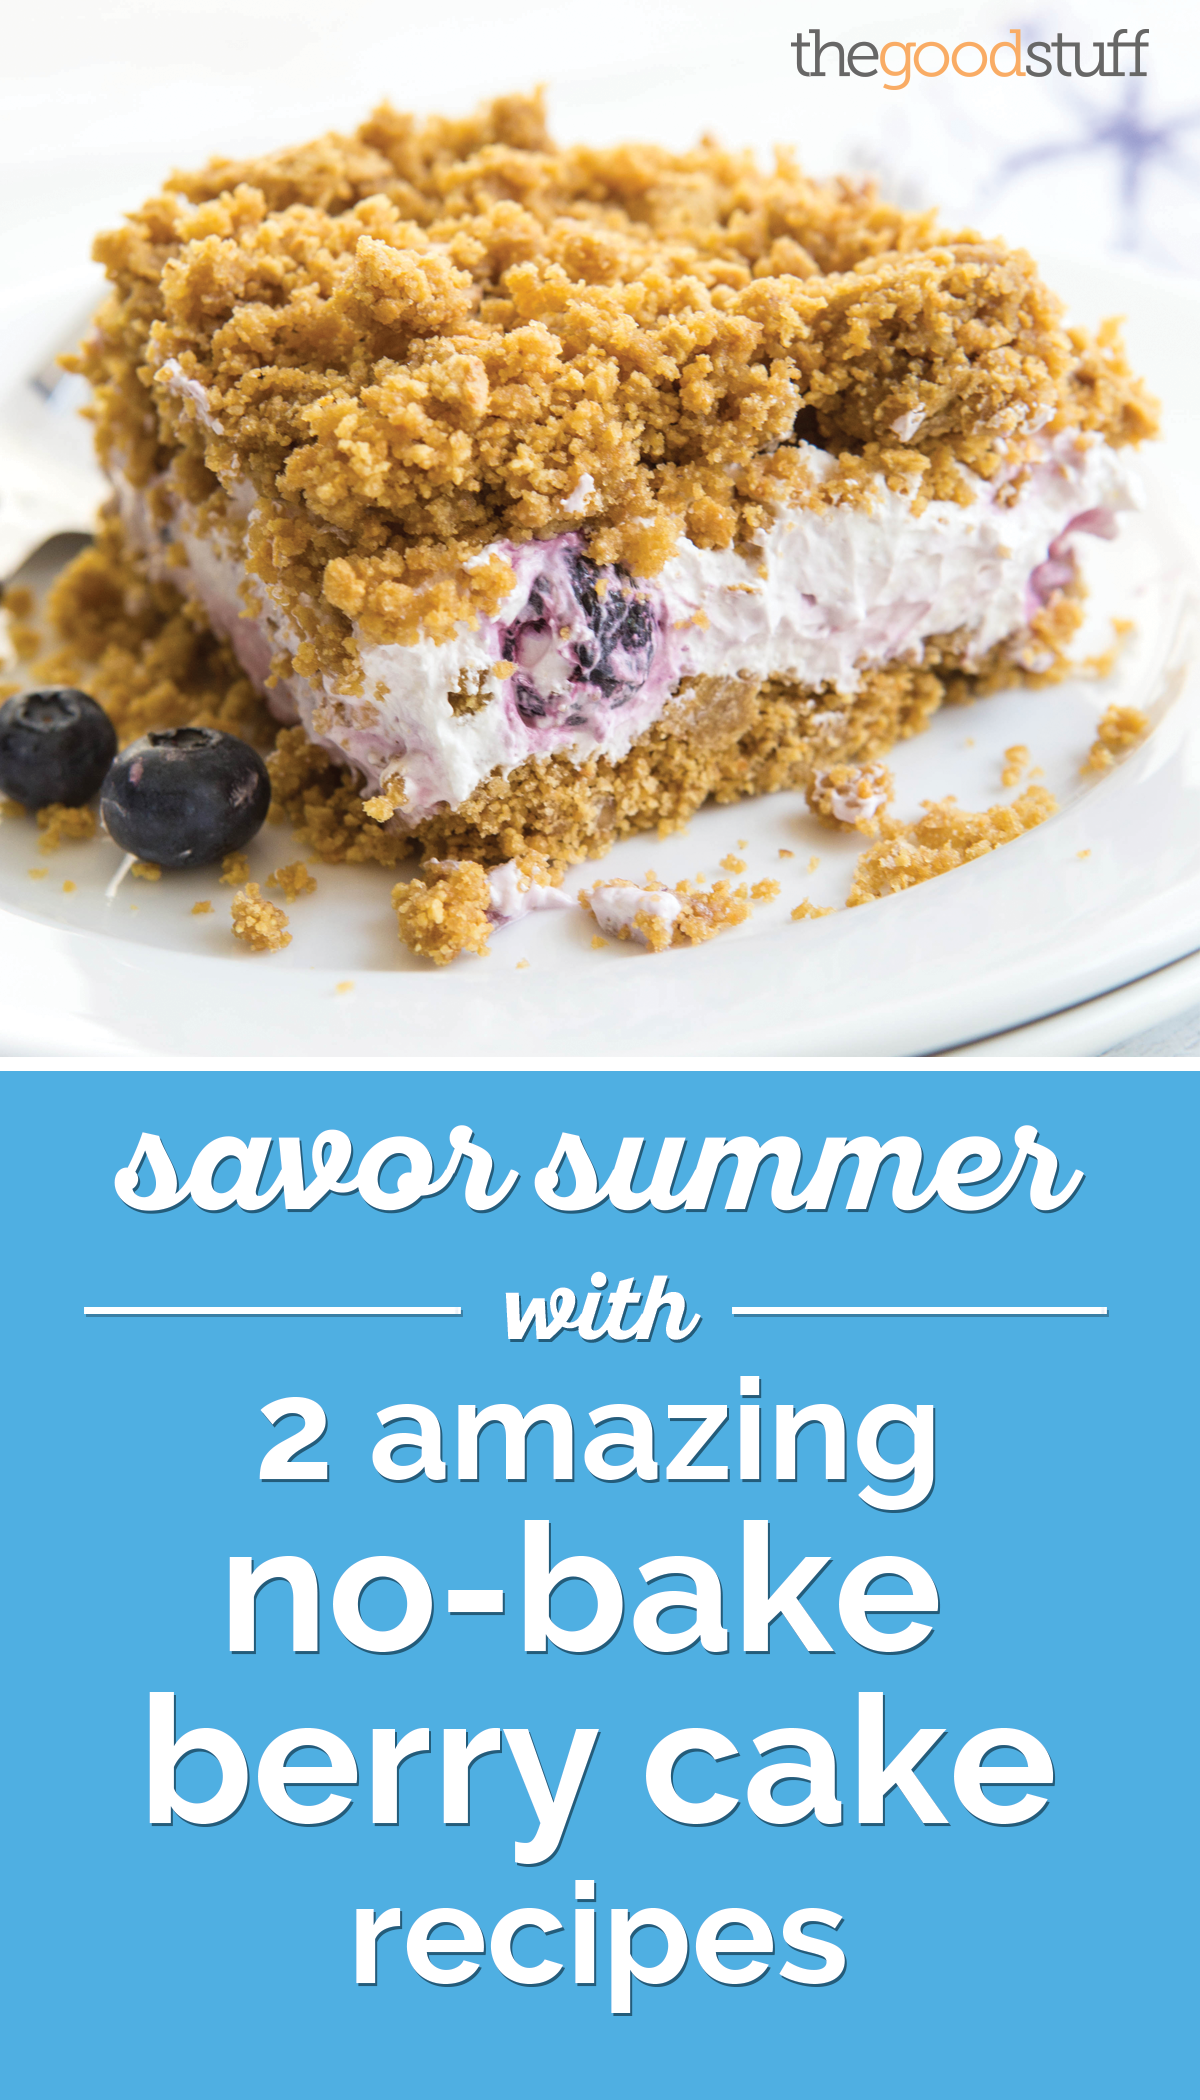 Savor Summer With 2 Amazing No-Bake Berry Cake Recipes  | thegoodstuff